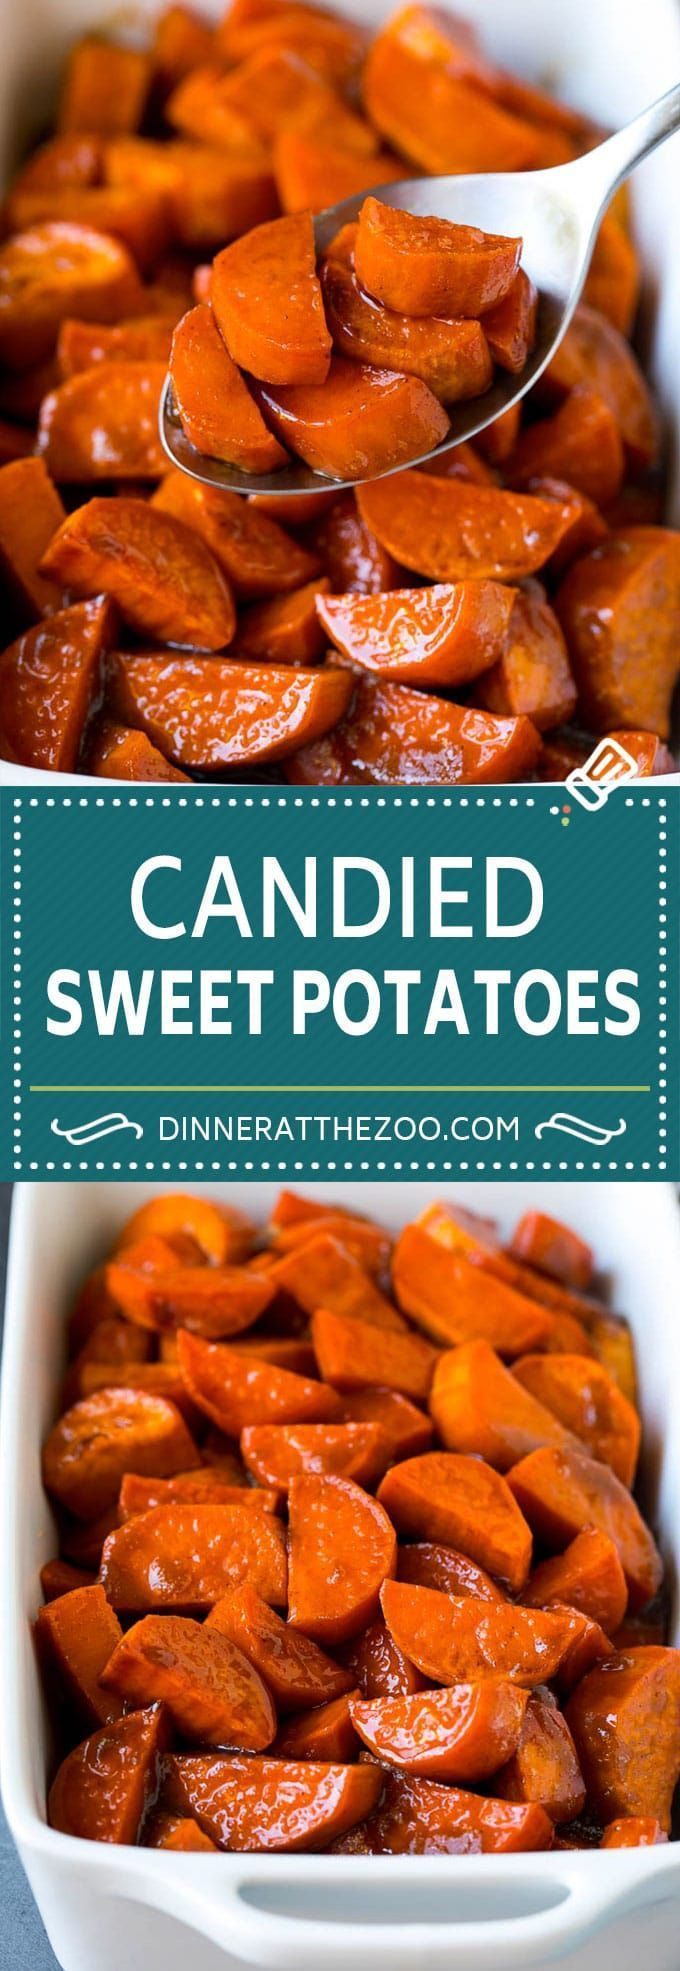 29627e324dfb8463f6c68c32c2092ec6 - Better Homes And Gardens Candied Yams